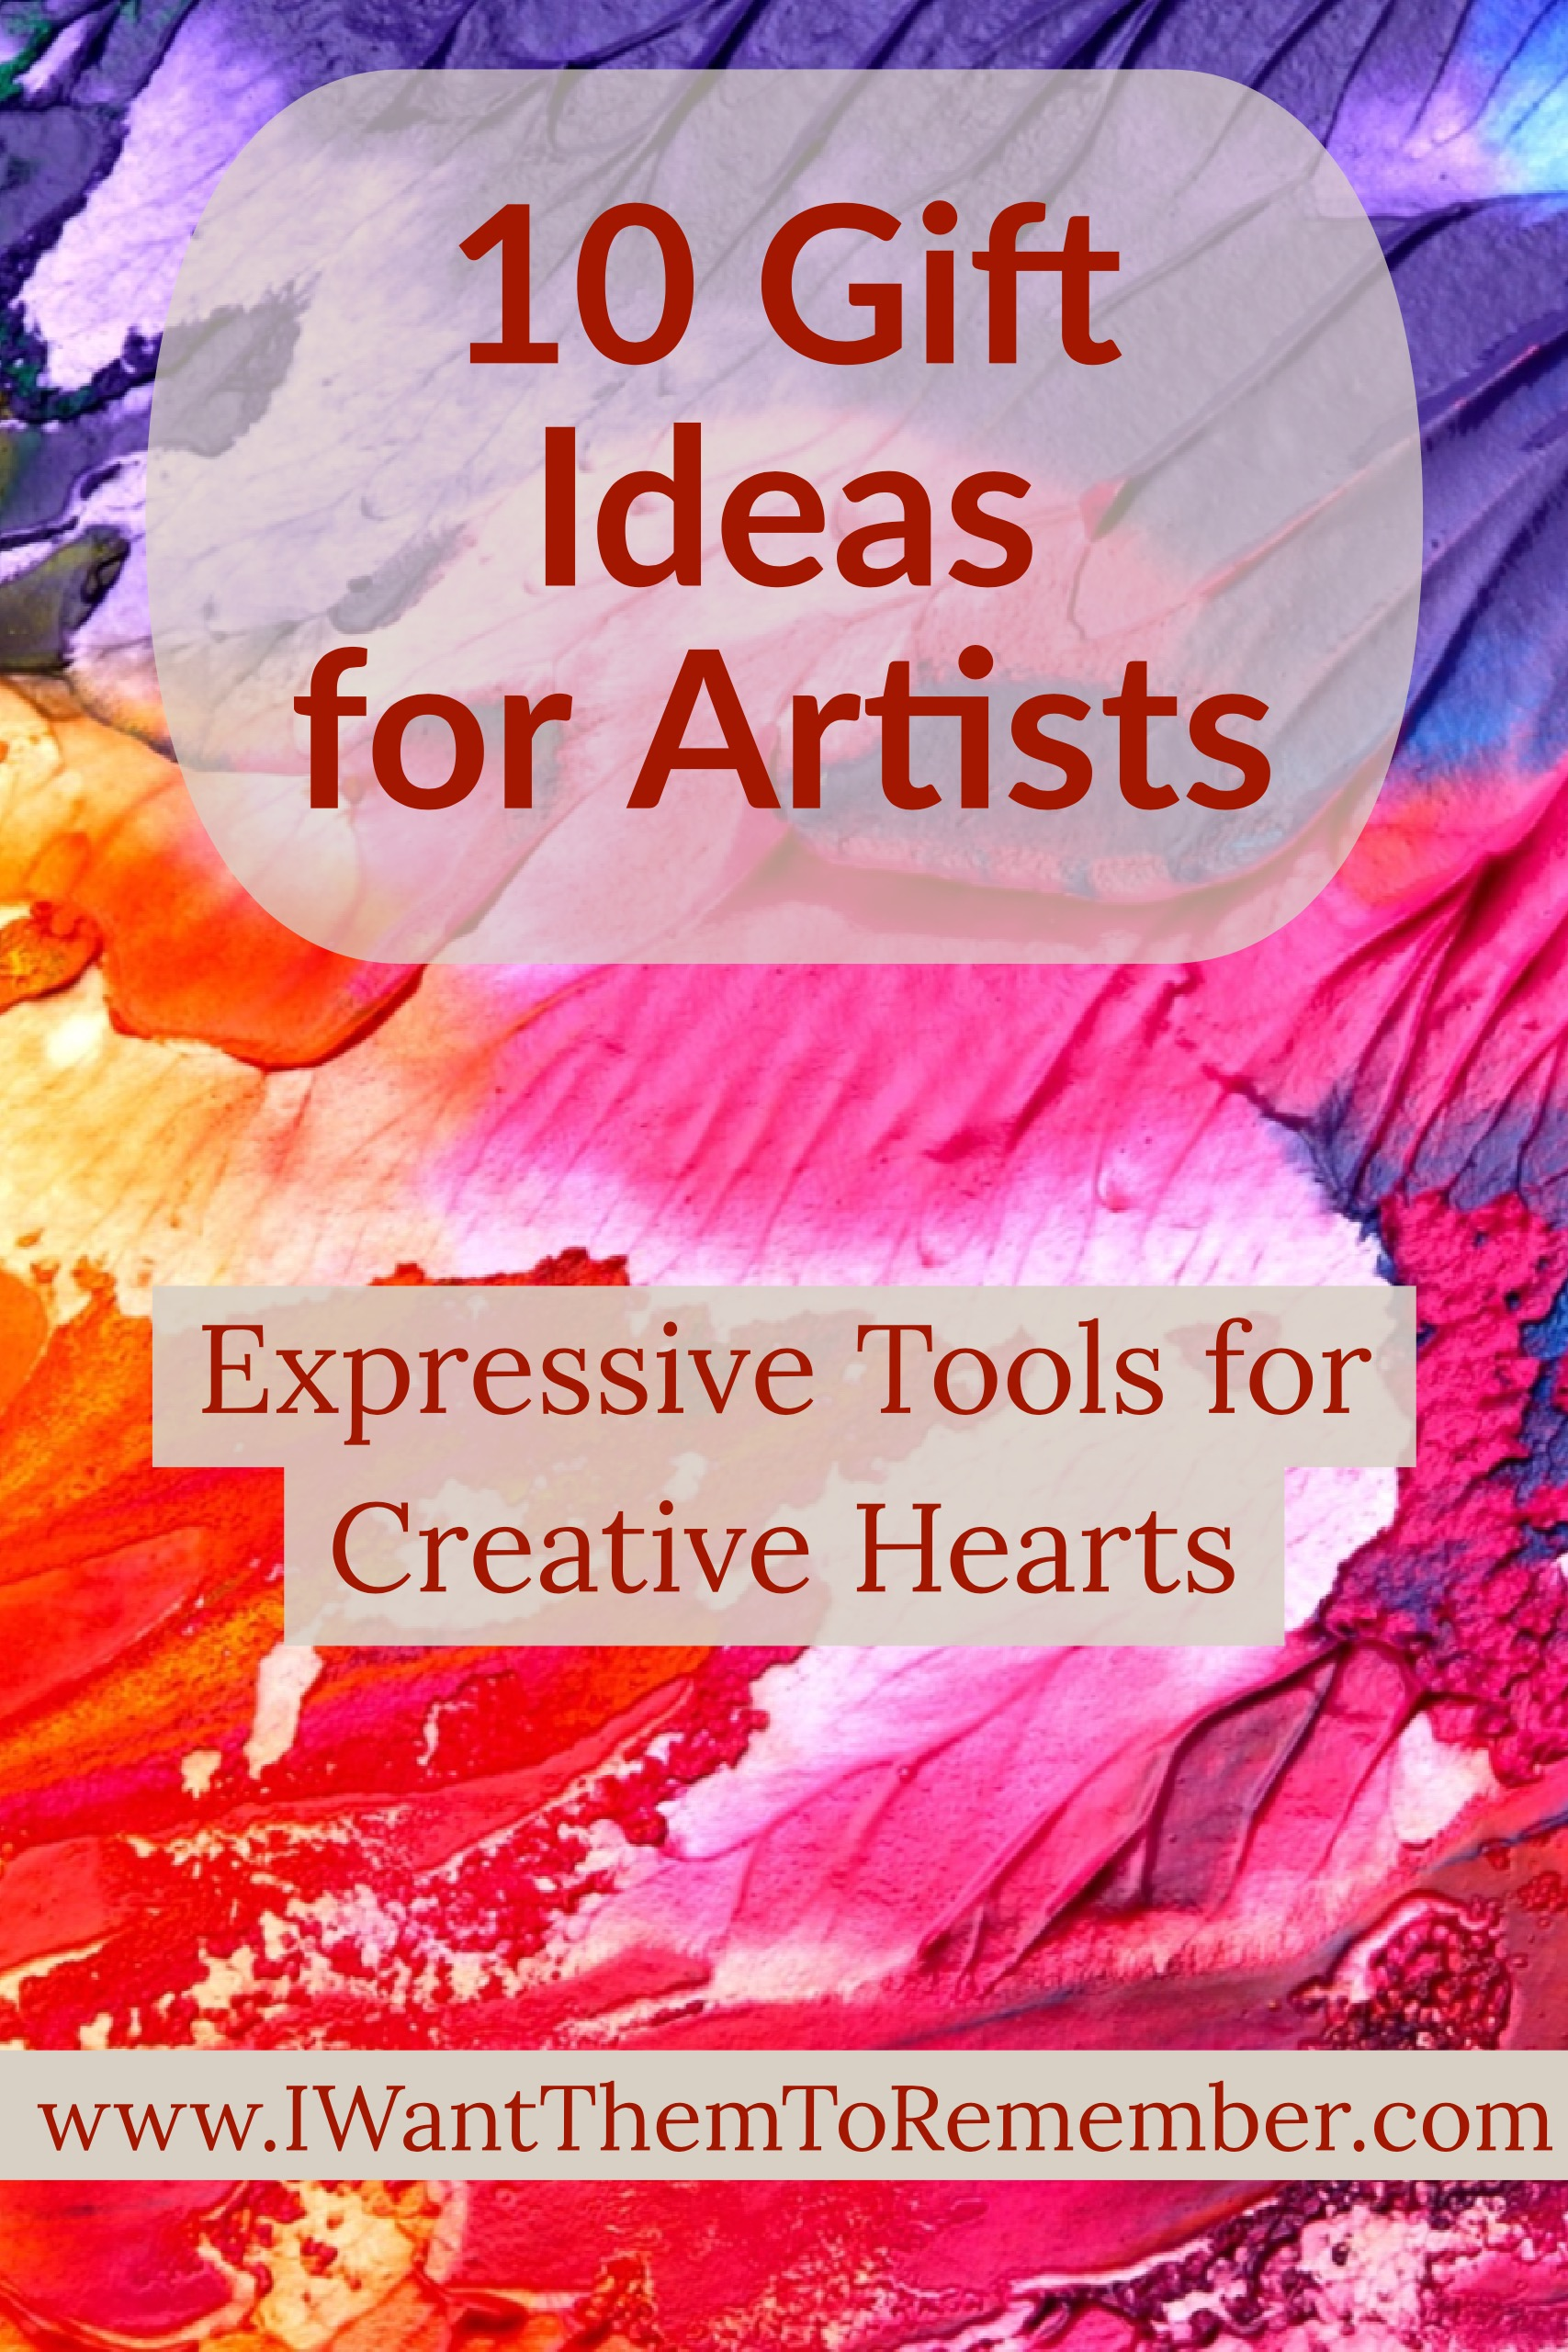 I really want to give gifts that are thoughtful and match the personality and interests of each special person in our life. Several people in our family love creativity and express themselves through art. If you have someone like this on your gift list, check out these gift ideas for artists.